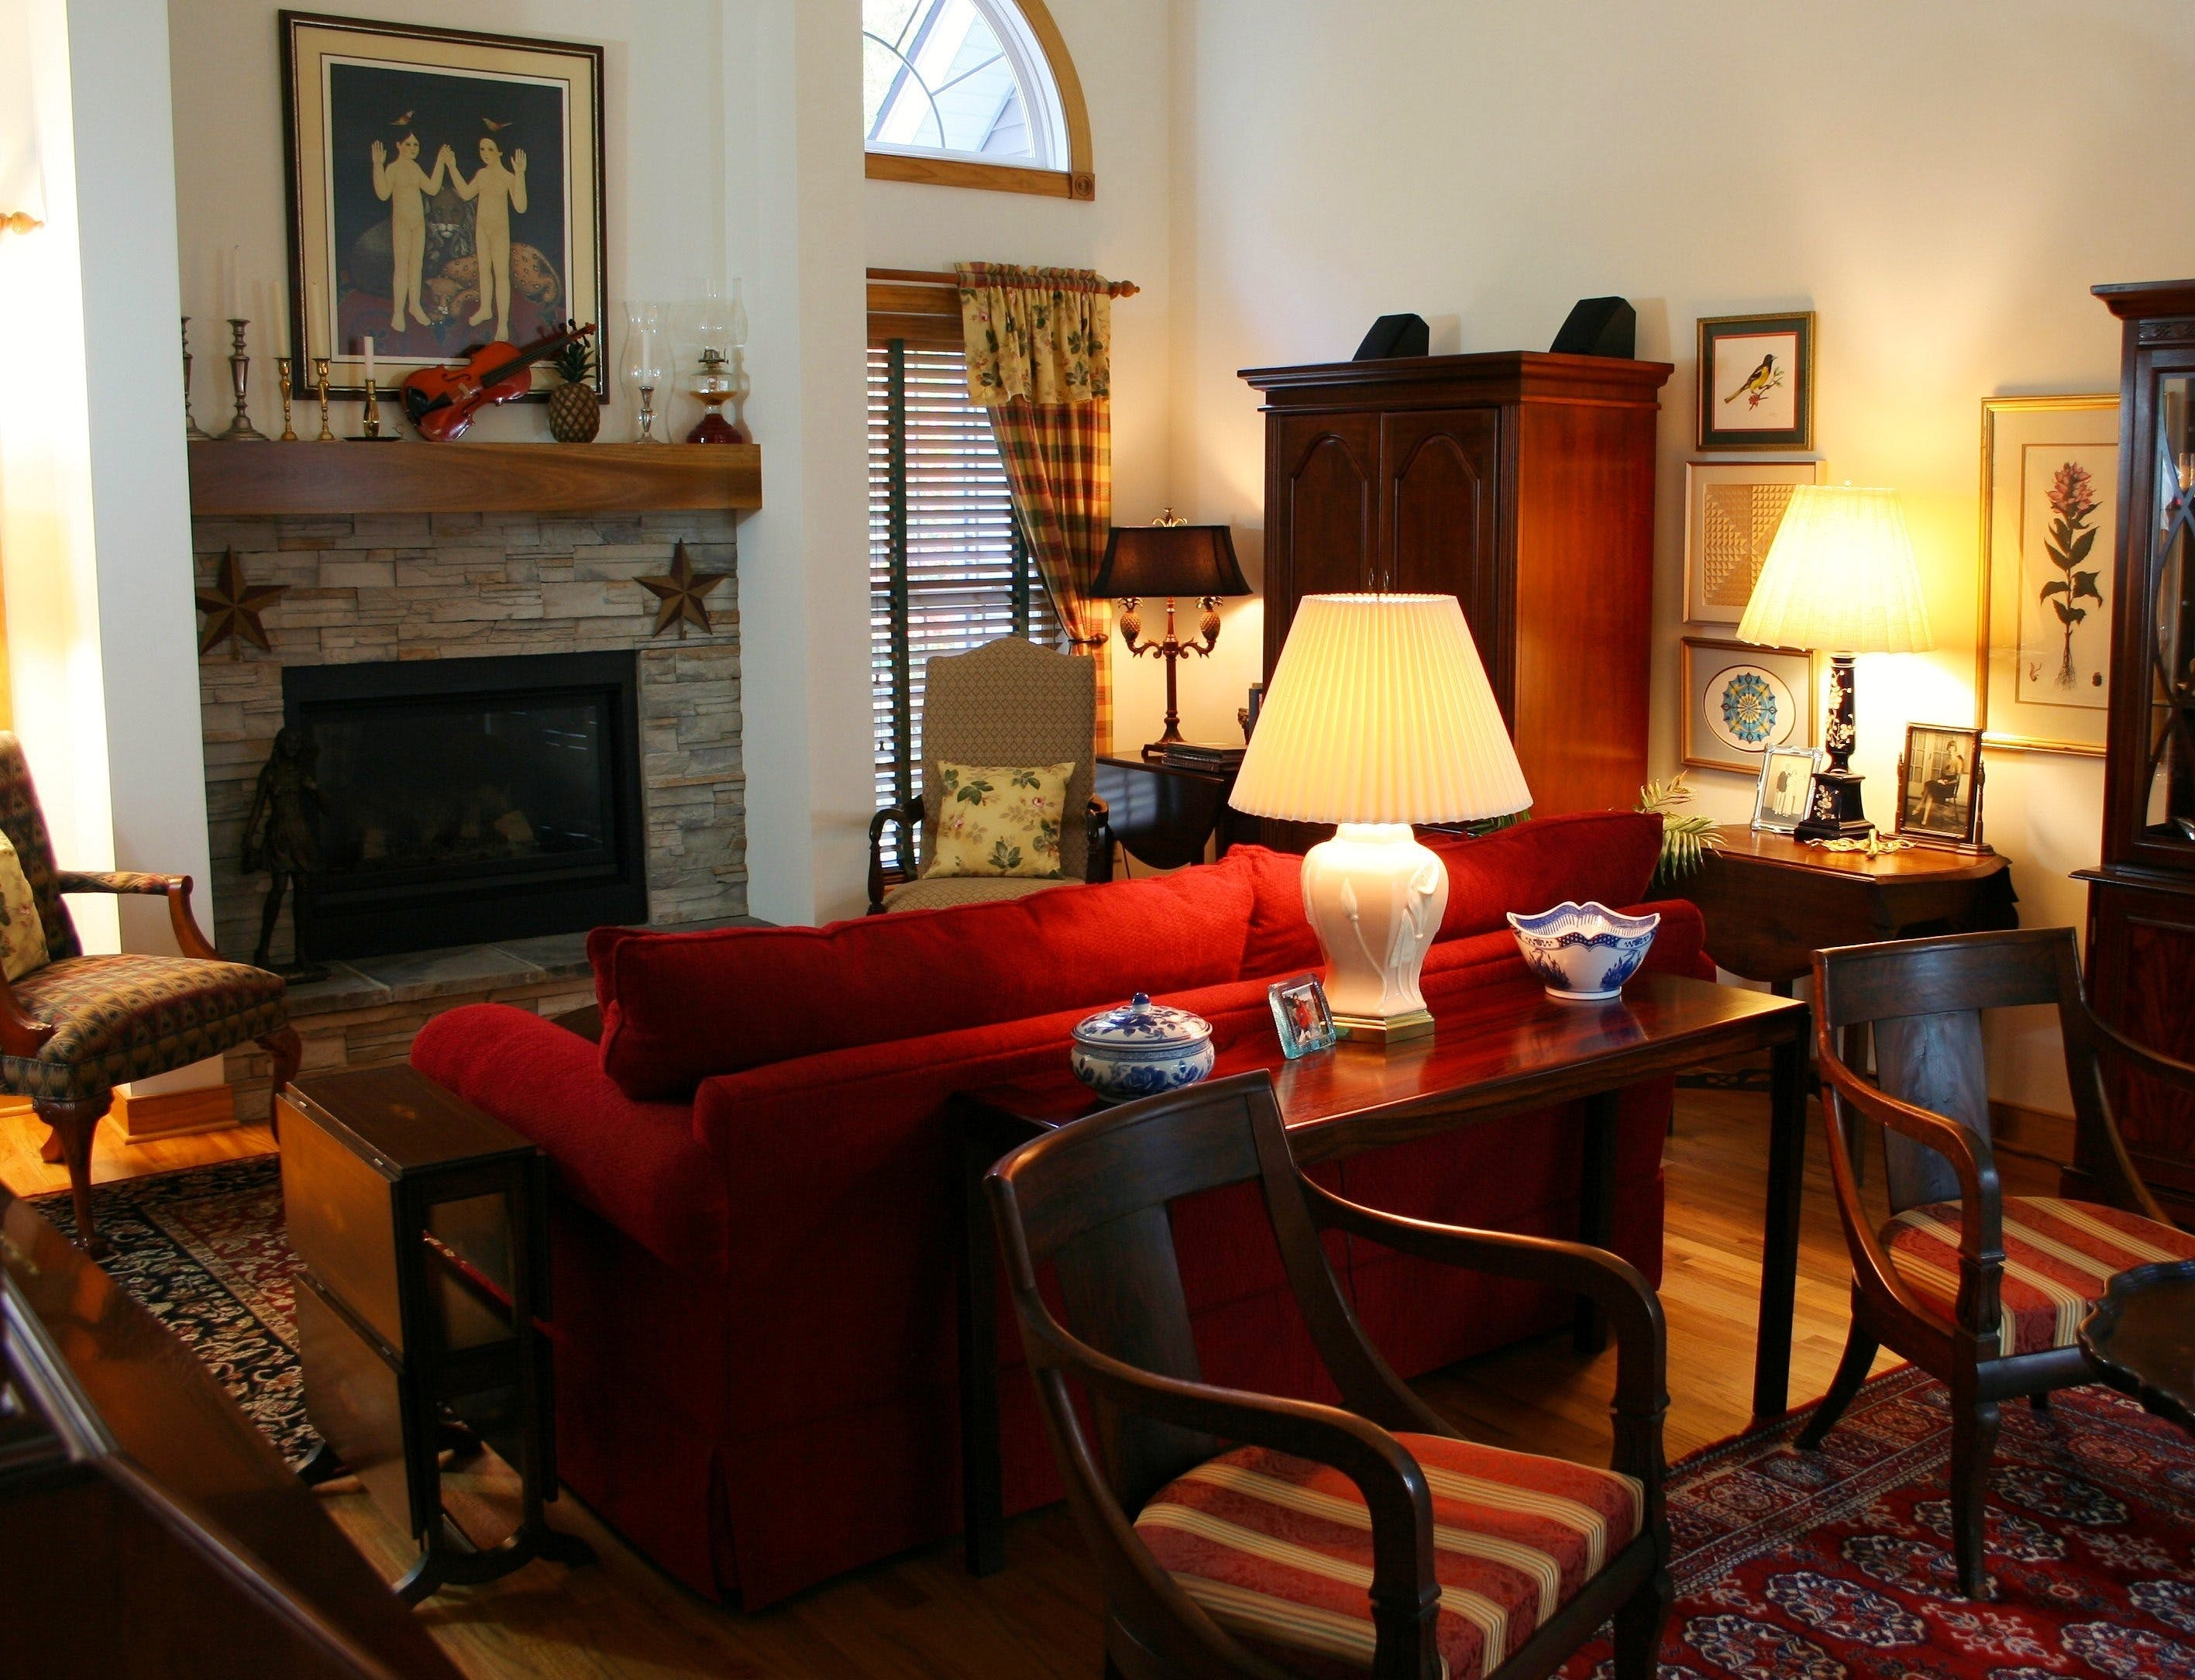 Brown Wooden Console Table Next to Red Loveseat